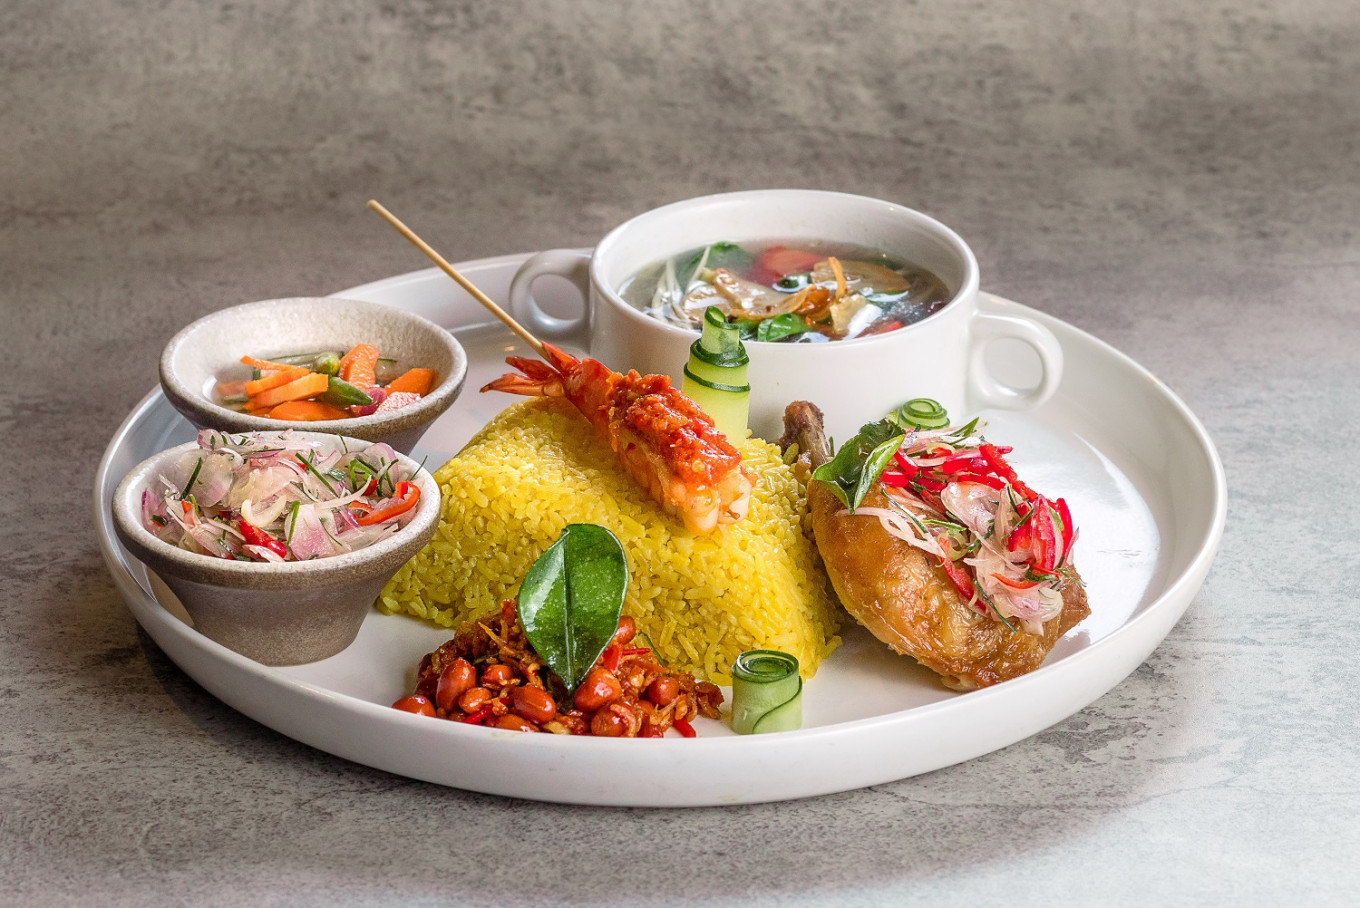 Break-the-fast with Indonesian food at these three restaurants